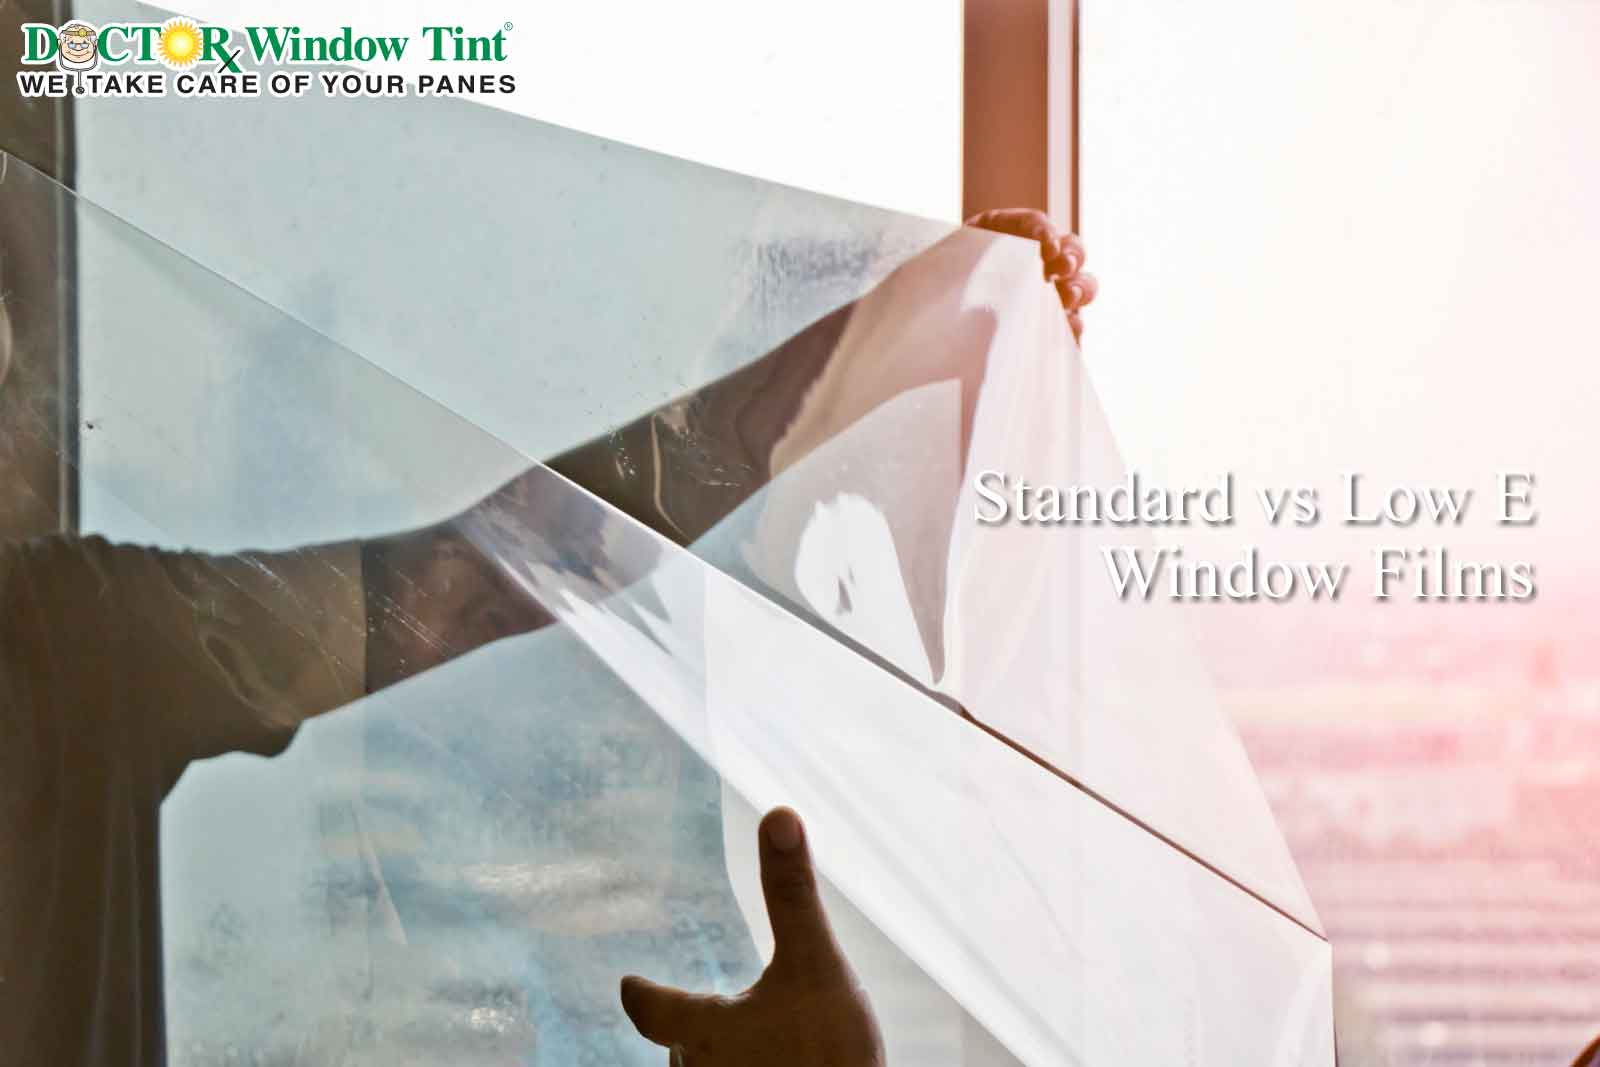 Standard vs Low E Window Films